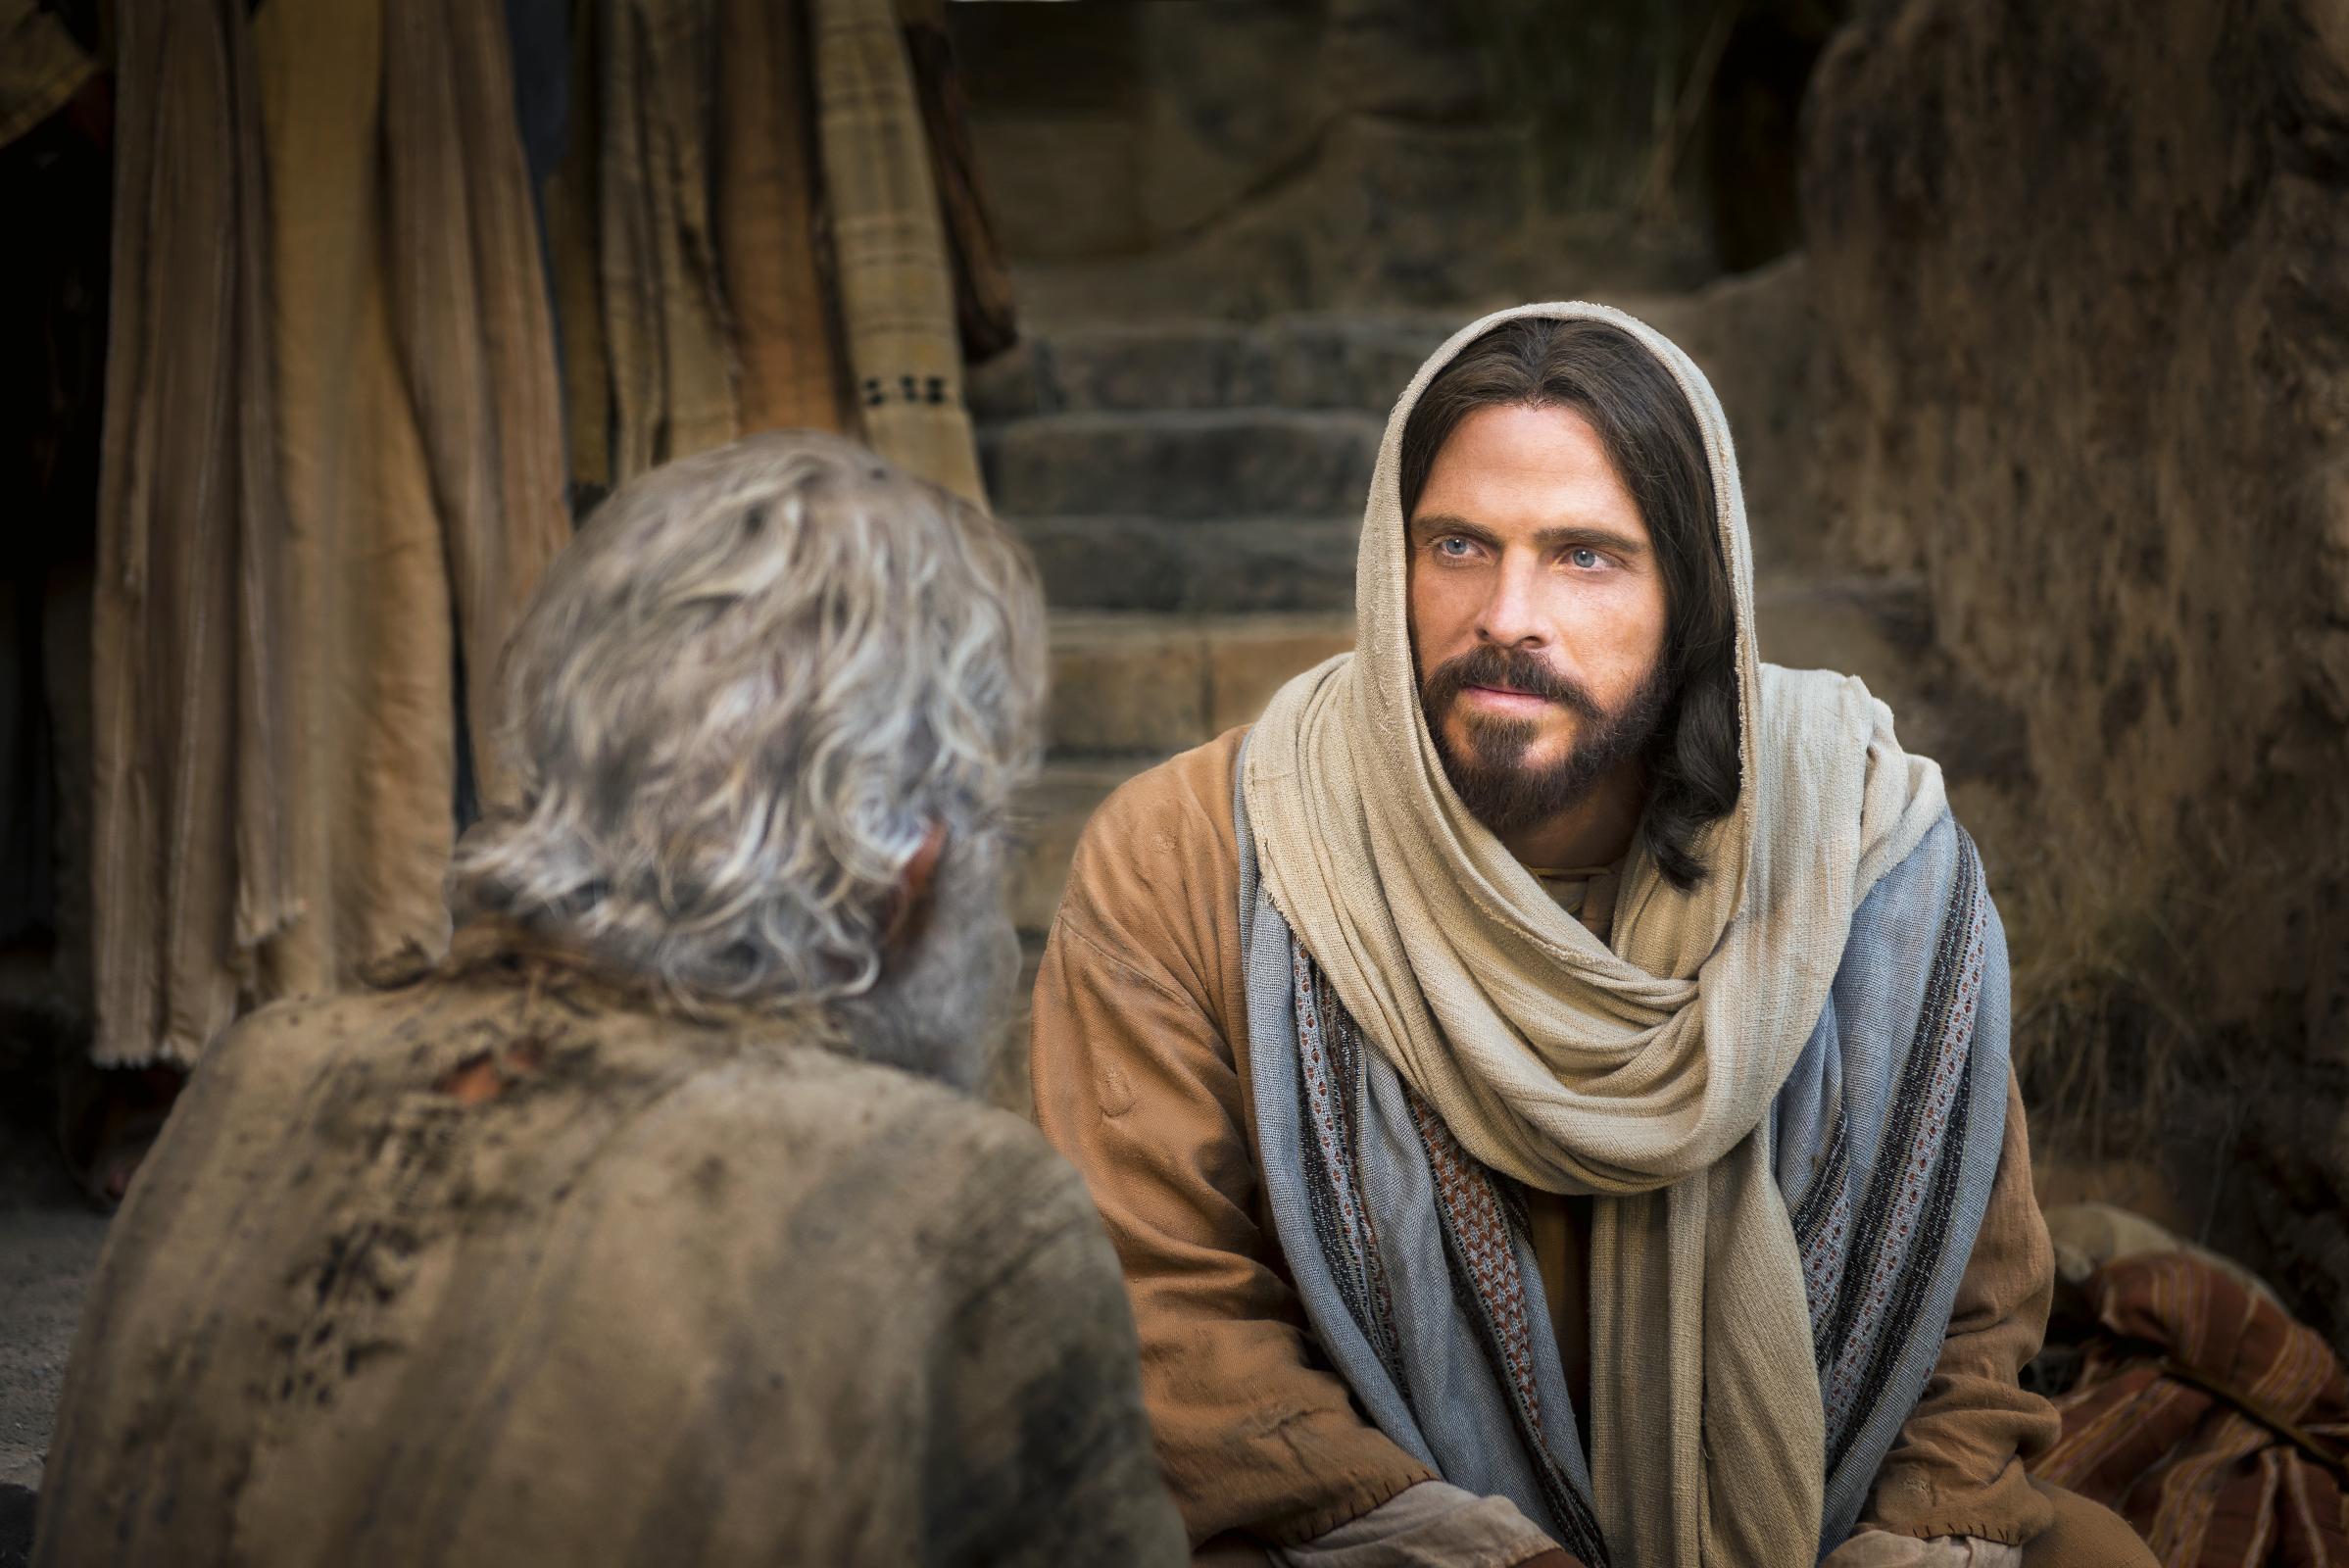 true story of jesus's life The true story reveals that in february 2012, after 25 years of separation, saroo brierley traveled to his childhood home in the village of ganesh talai in the city of khandwa, india.